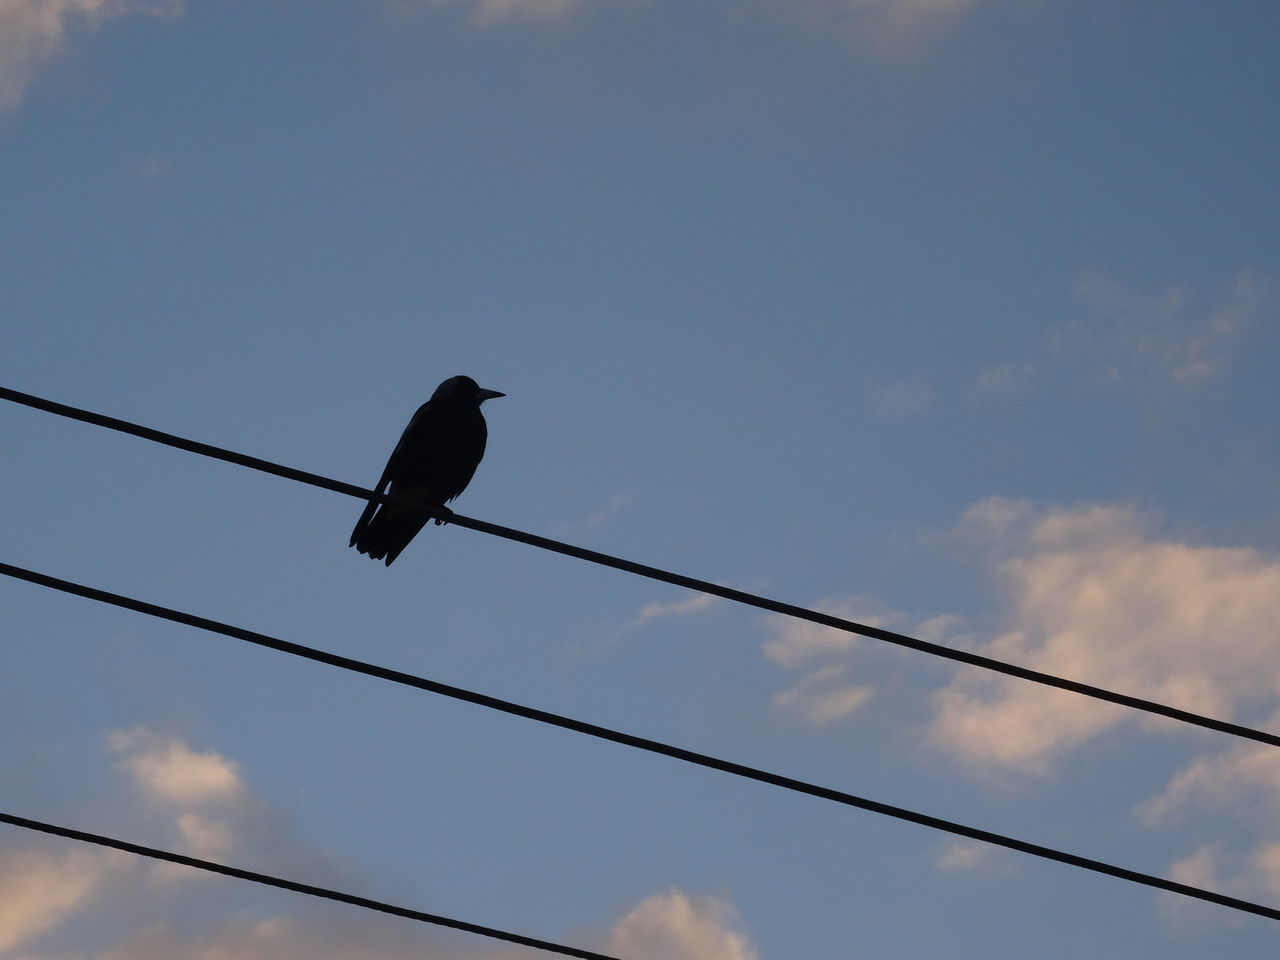 bird, low angle view, animals in the wild, cable, one animal, animal themes, connection, animal wildlife, perching, sky, no people, crow, cloud - sky, outdoors, day, nature, raven - bird